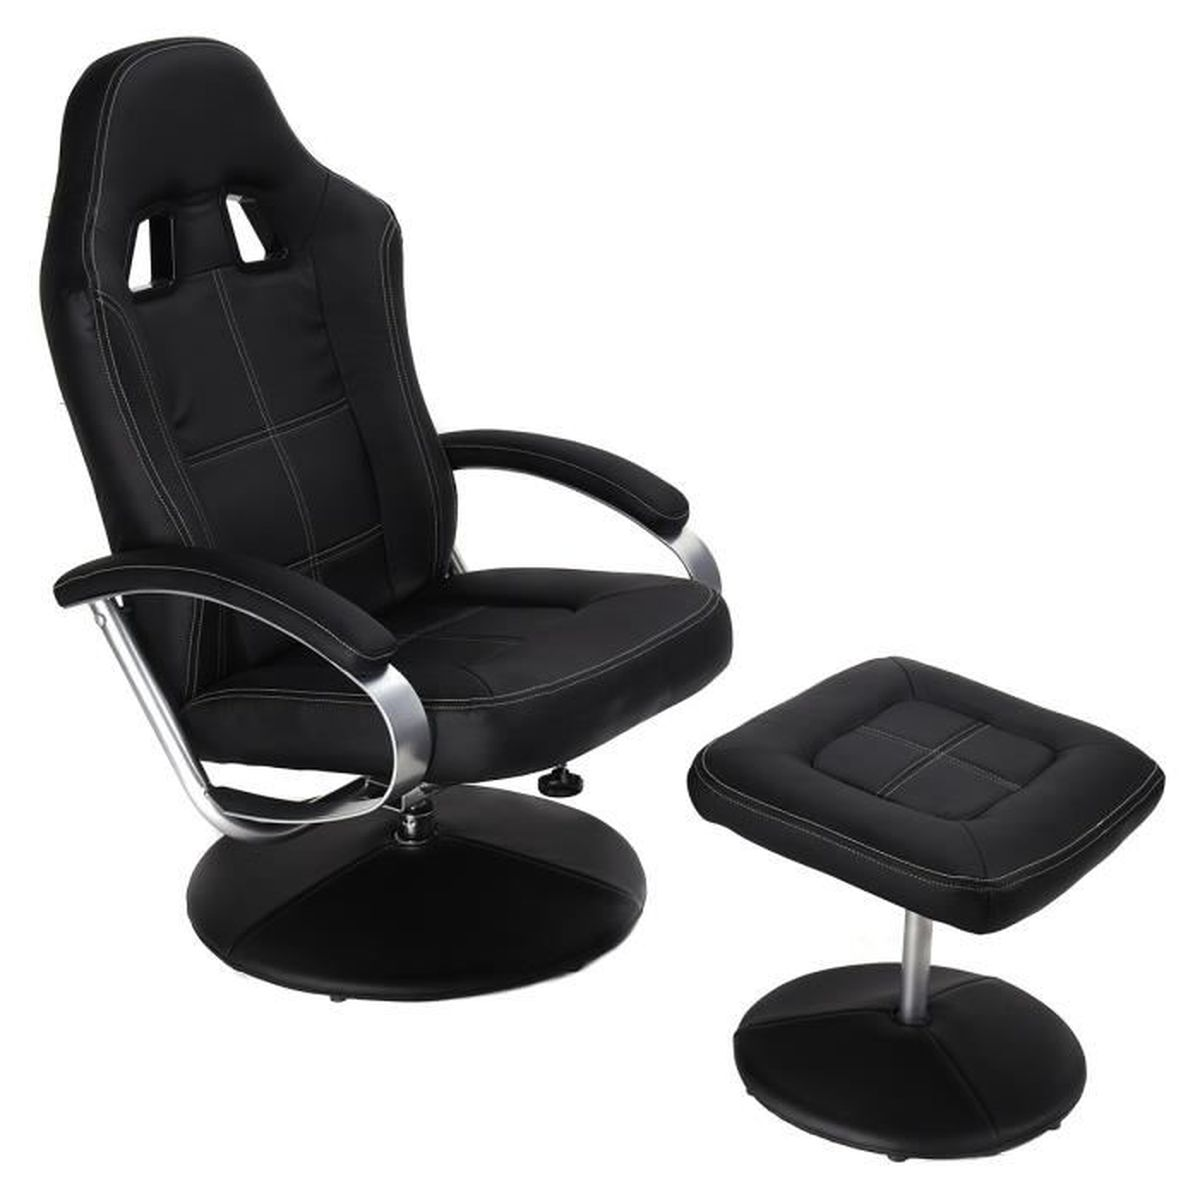 Fauteuil relax tv avec pouf tabouret inclinable racing relaxation chaise r gl - Fauteuil relax avec pouf ...